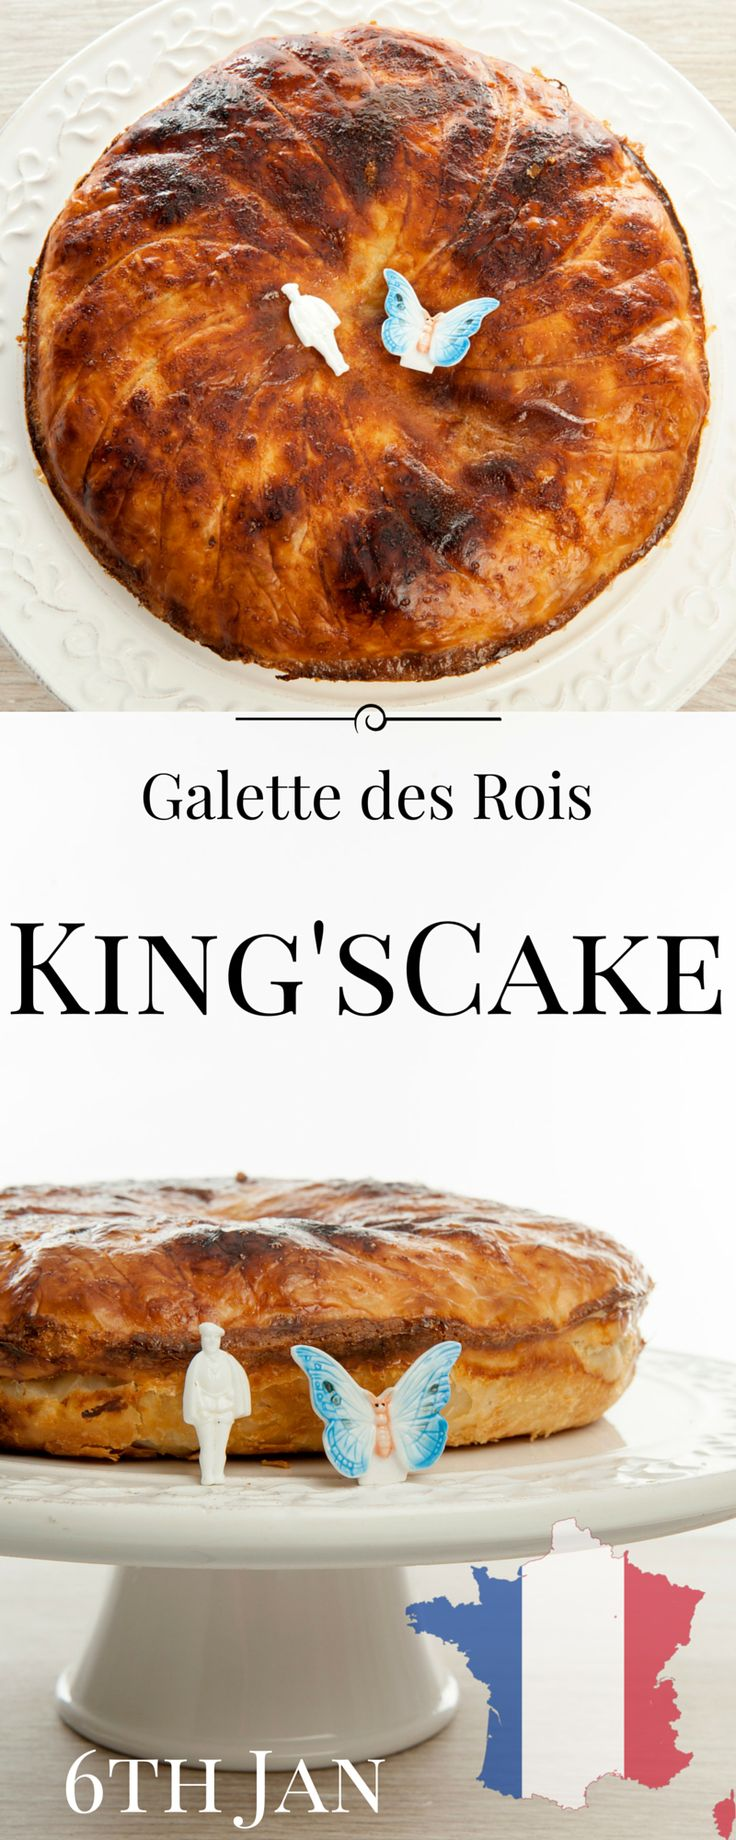 Galette des Rois or King's Cake is a French celebration of the 3 wise men. Try this delicious recipe xx YUM!